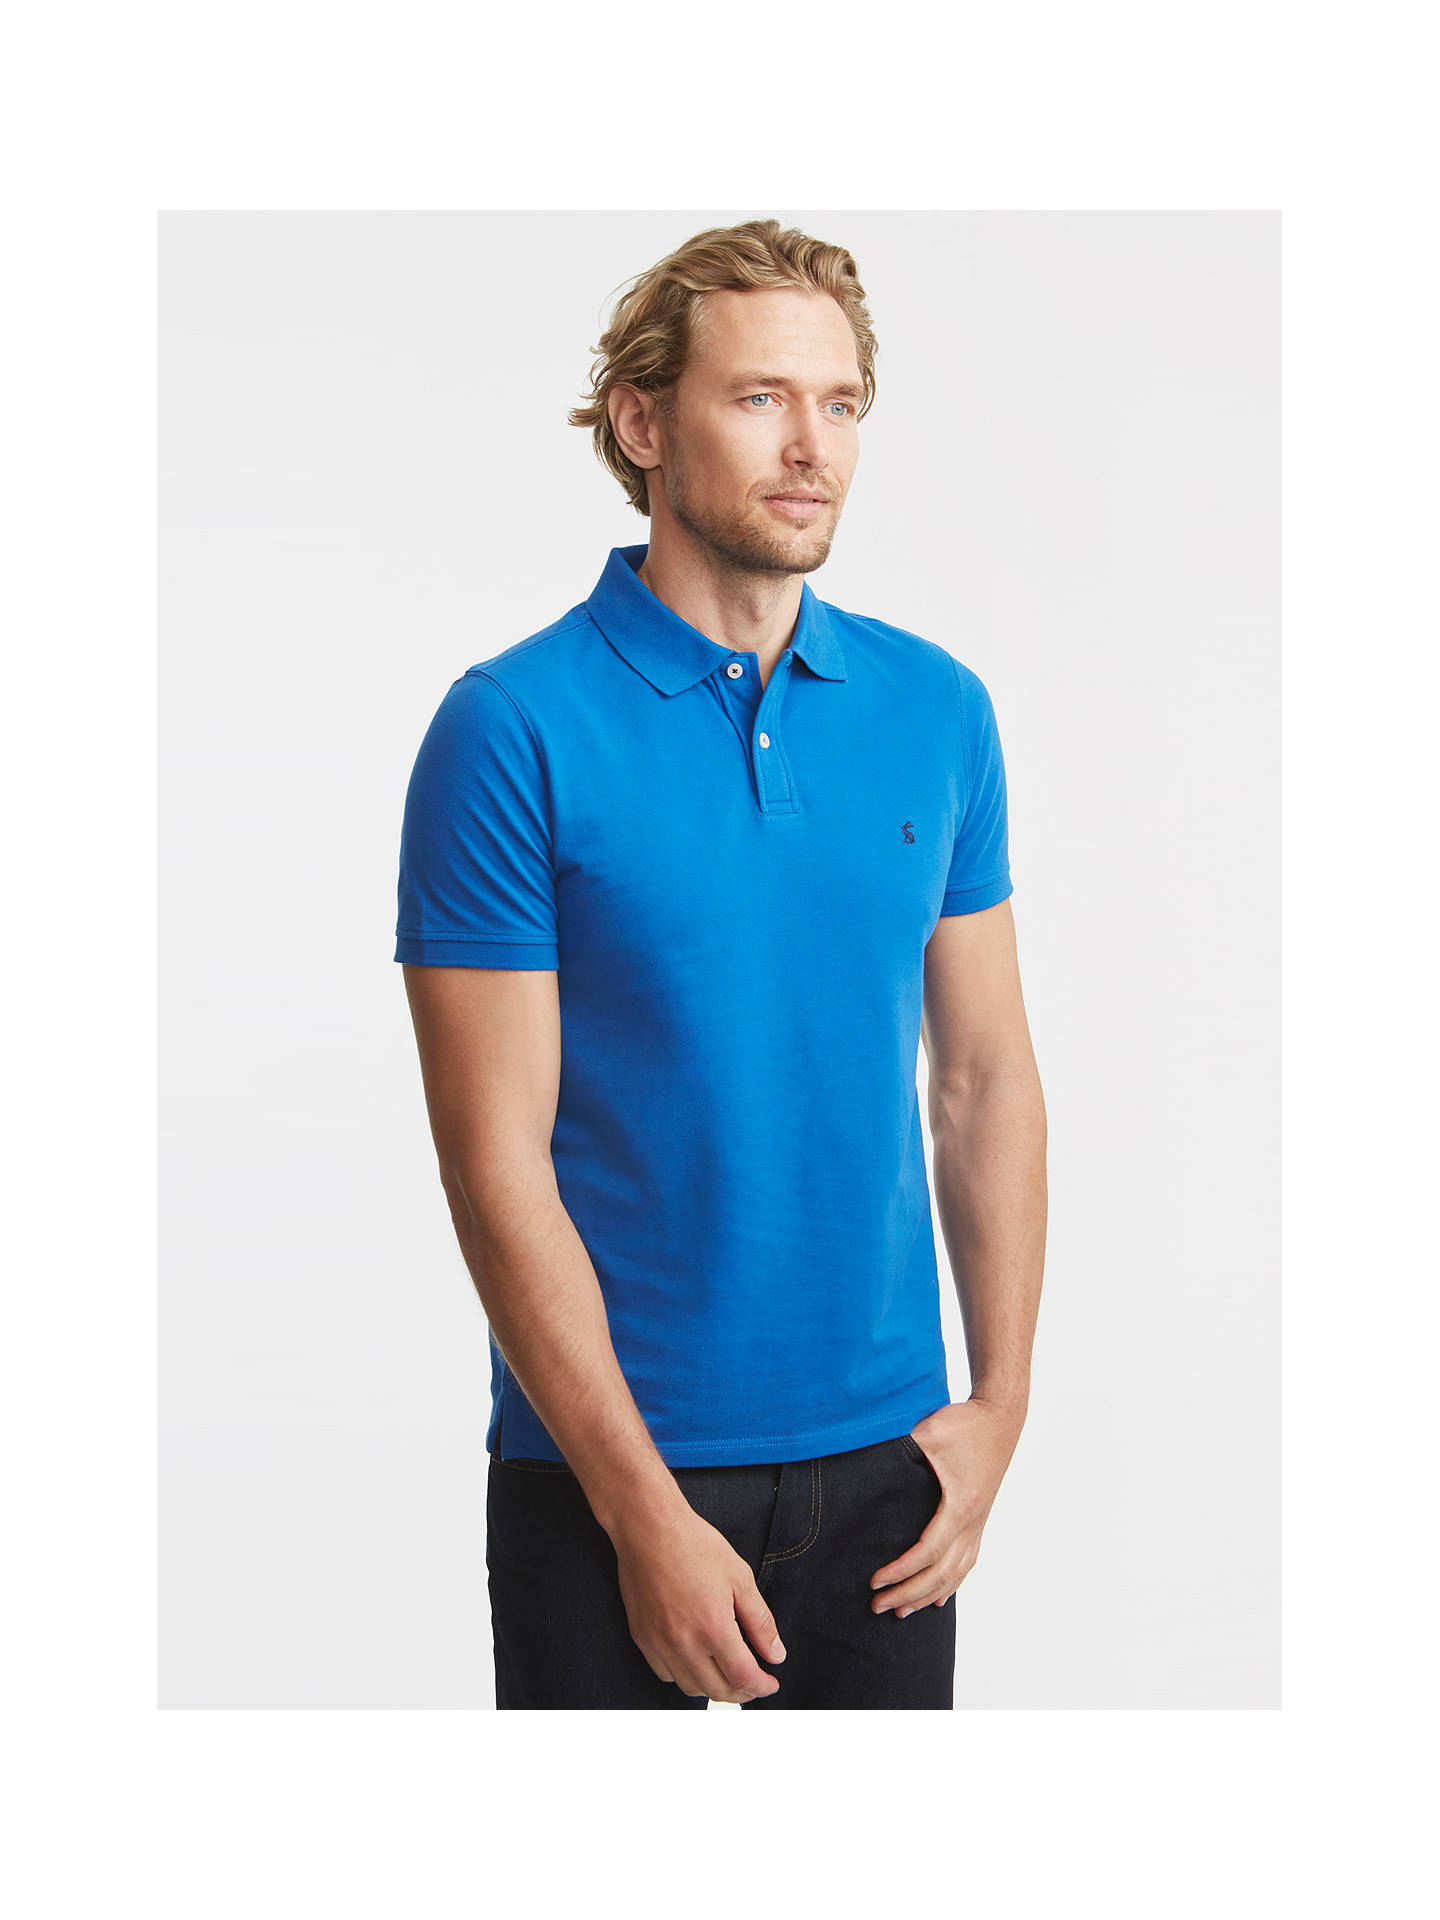 1dc5b231a29 Buy Joules New Maxwell Slim Fit Polo Shirt, Olympian Blue, S Online at  johnlewis ...